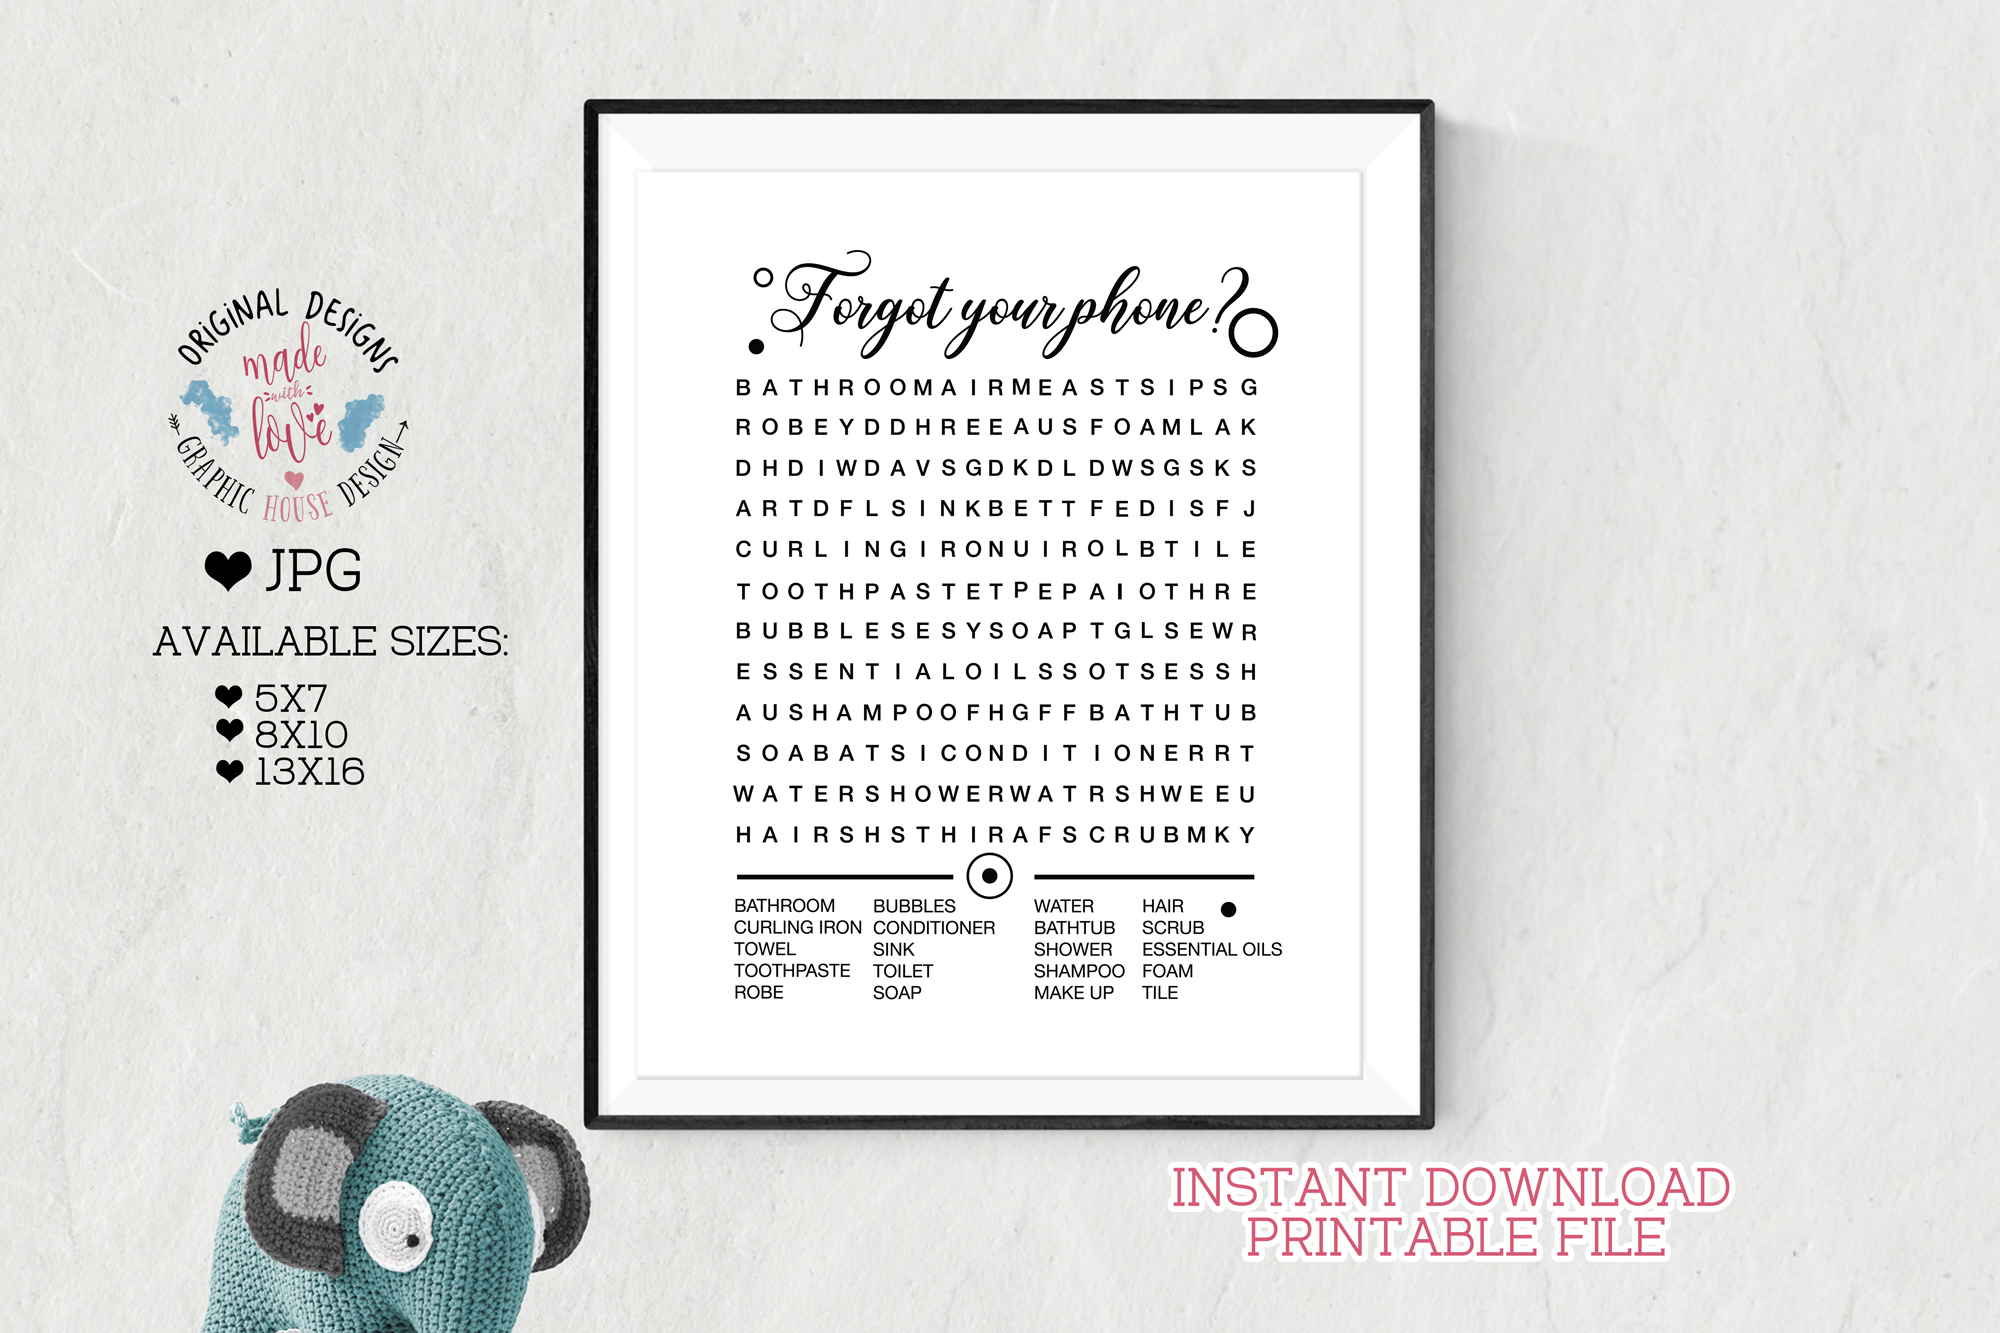 graphic regarding Printable Bathroom Art referred to as Forgot Your Telephone Phrase Glimpse Rest room Artwork Printable